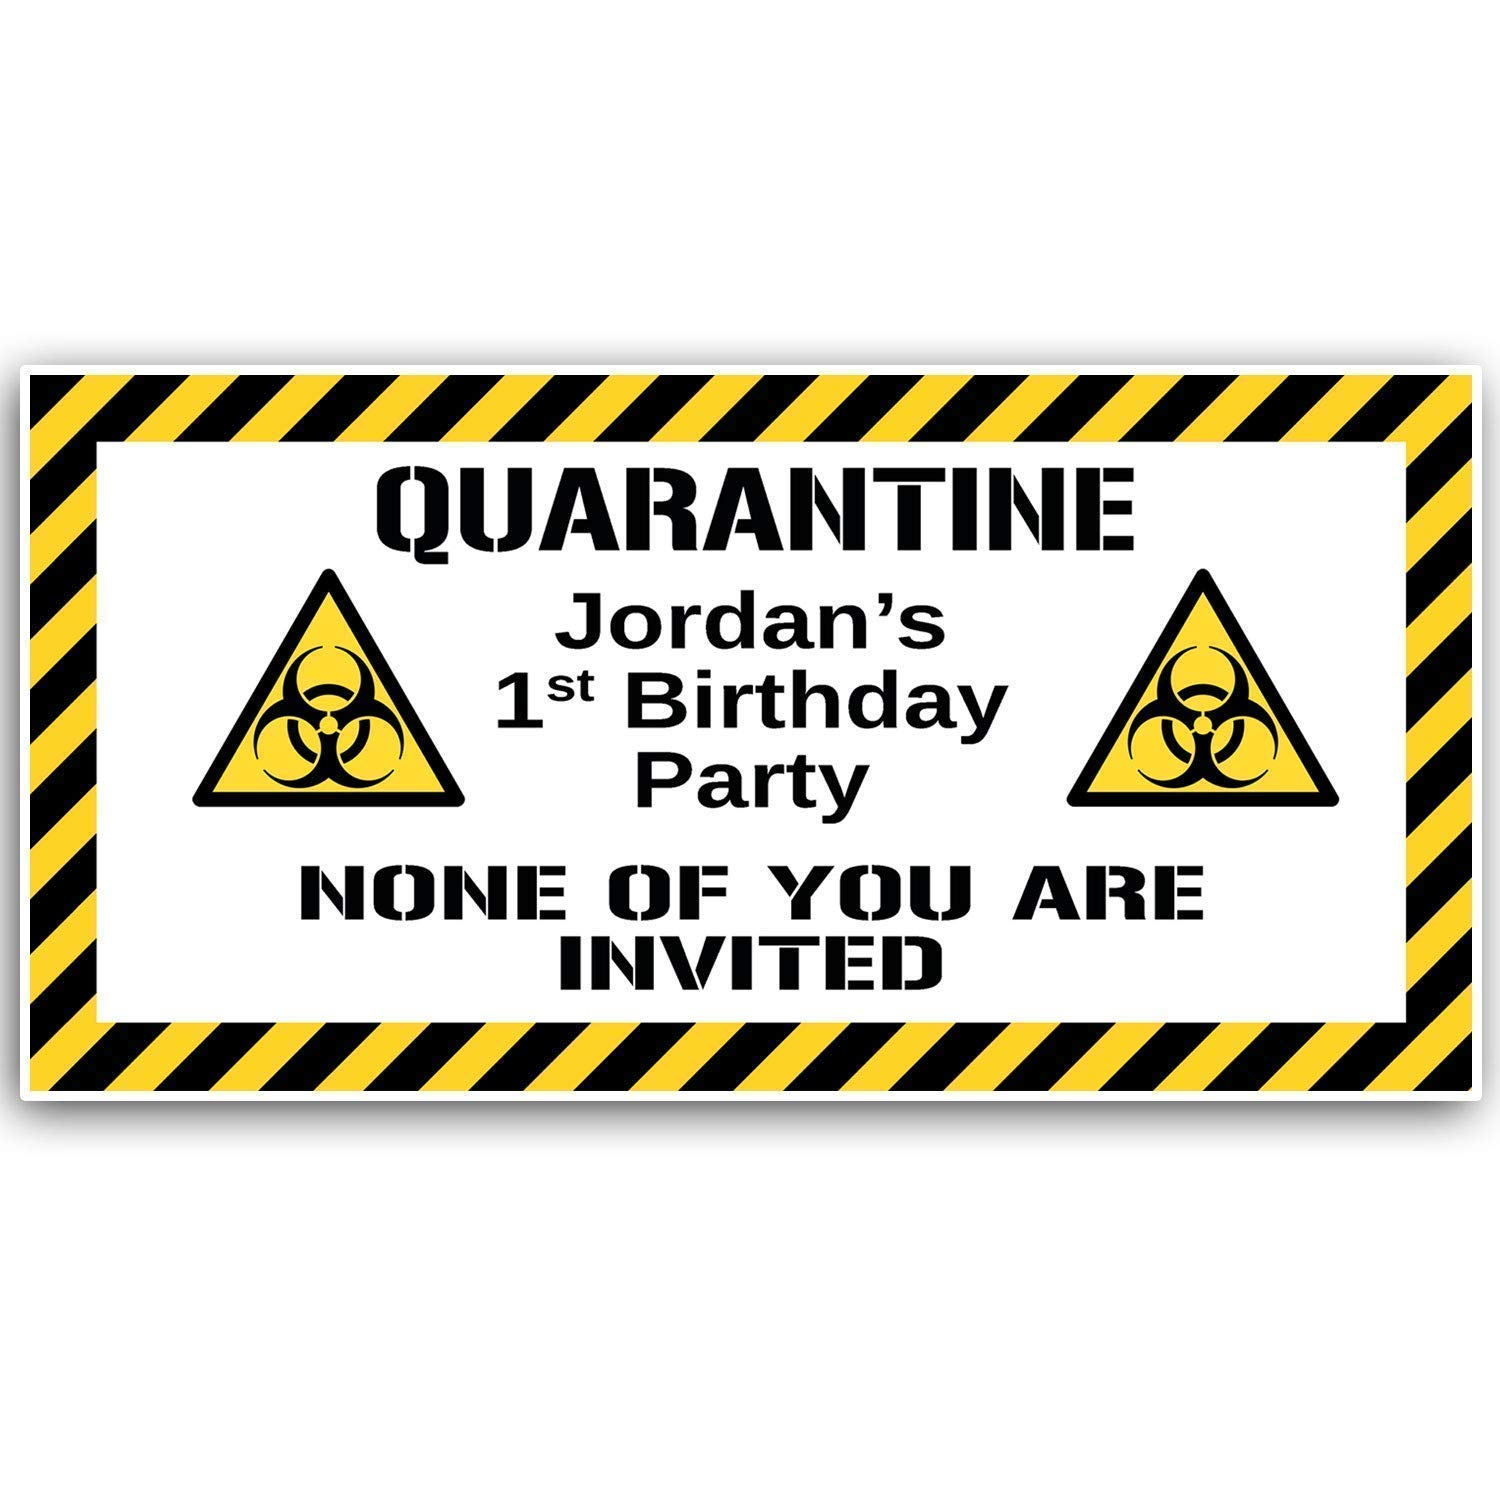 It's just a photo of Quarantine Sign Printable for toxic waste